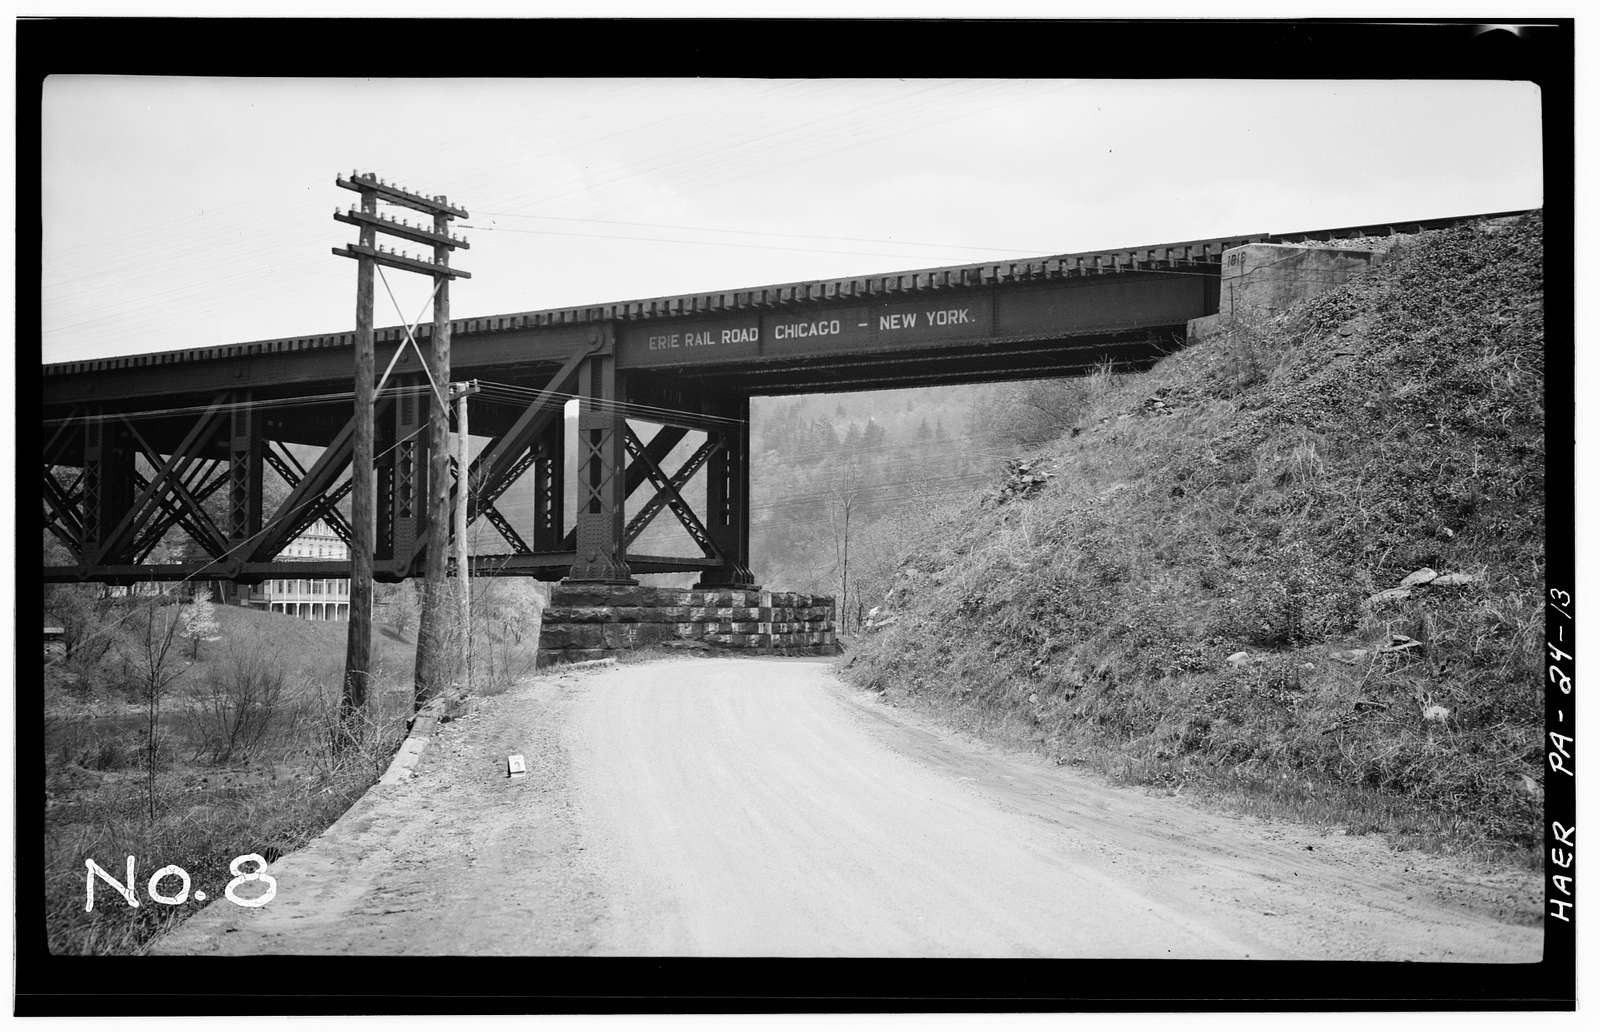 Erie Railway, Delaware Division, Bridge 110.54, Spanning Lackawaxen River, East of State Route 590, Lackawaxen, Pike County, PA